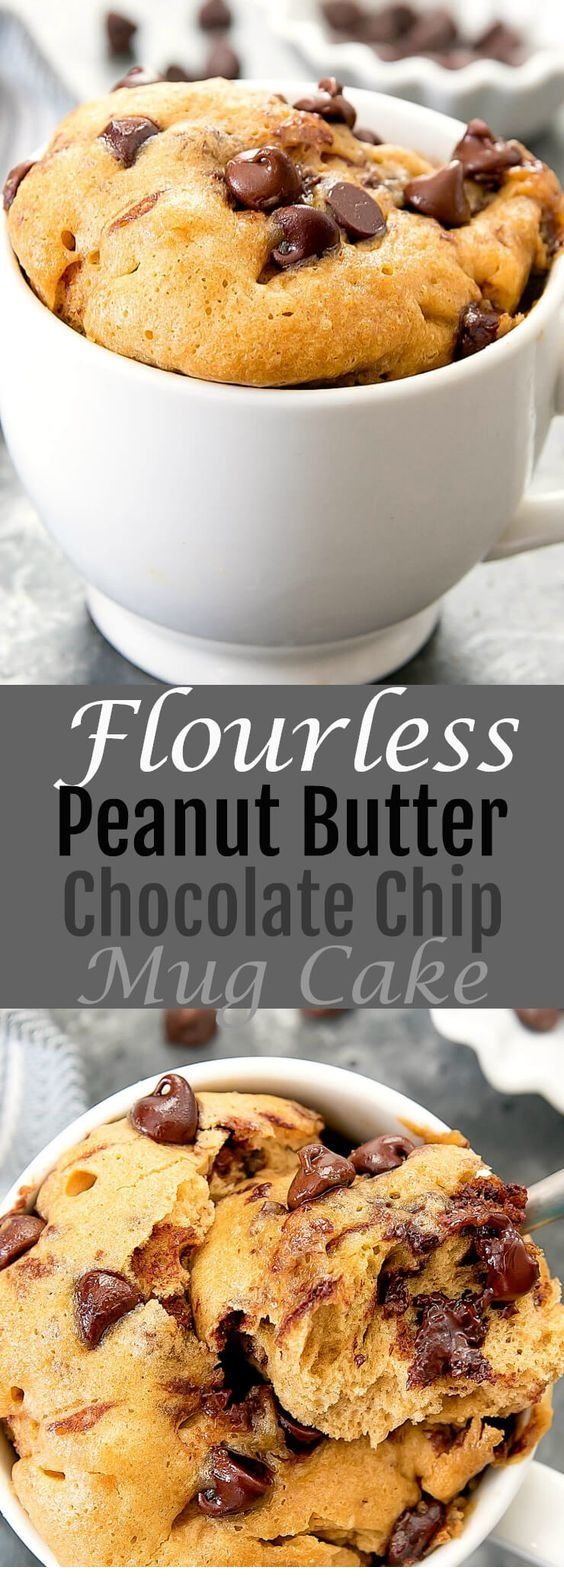 Flourless Peanut Butter Chocolate Chip Mug Cake